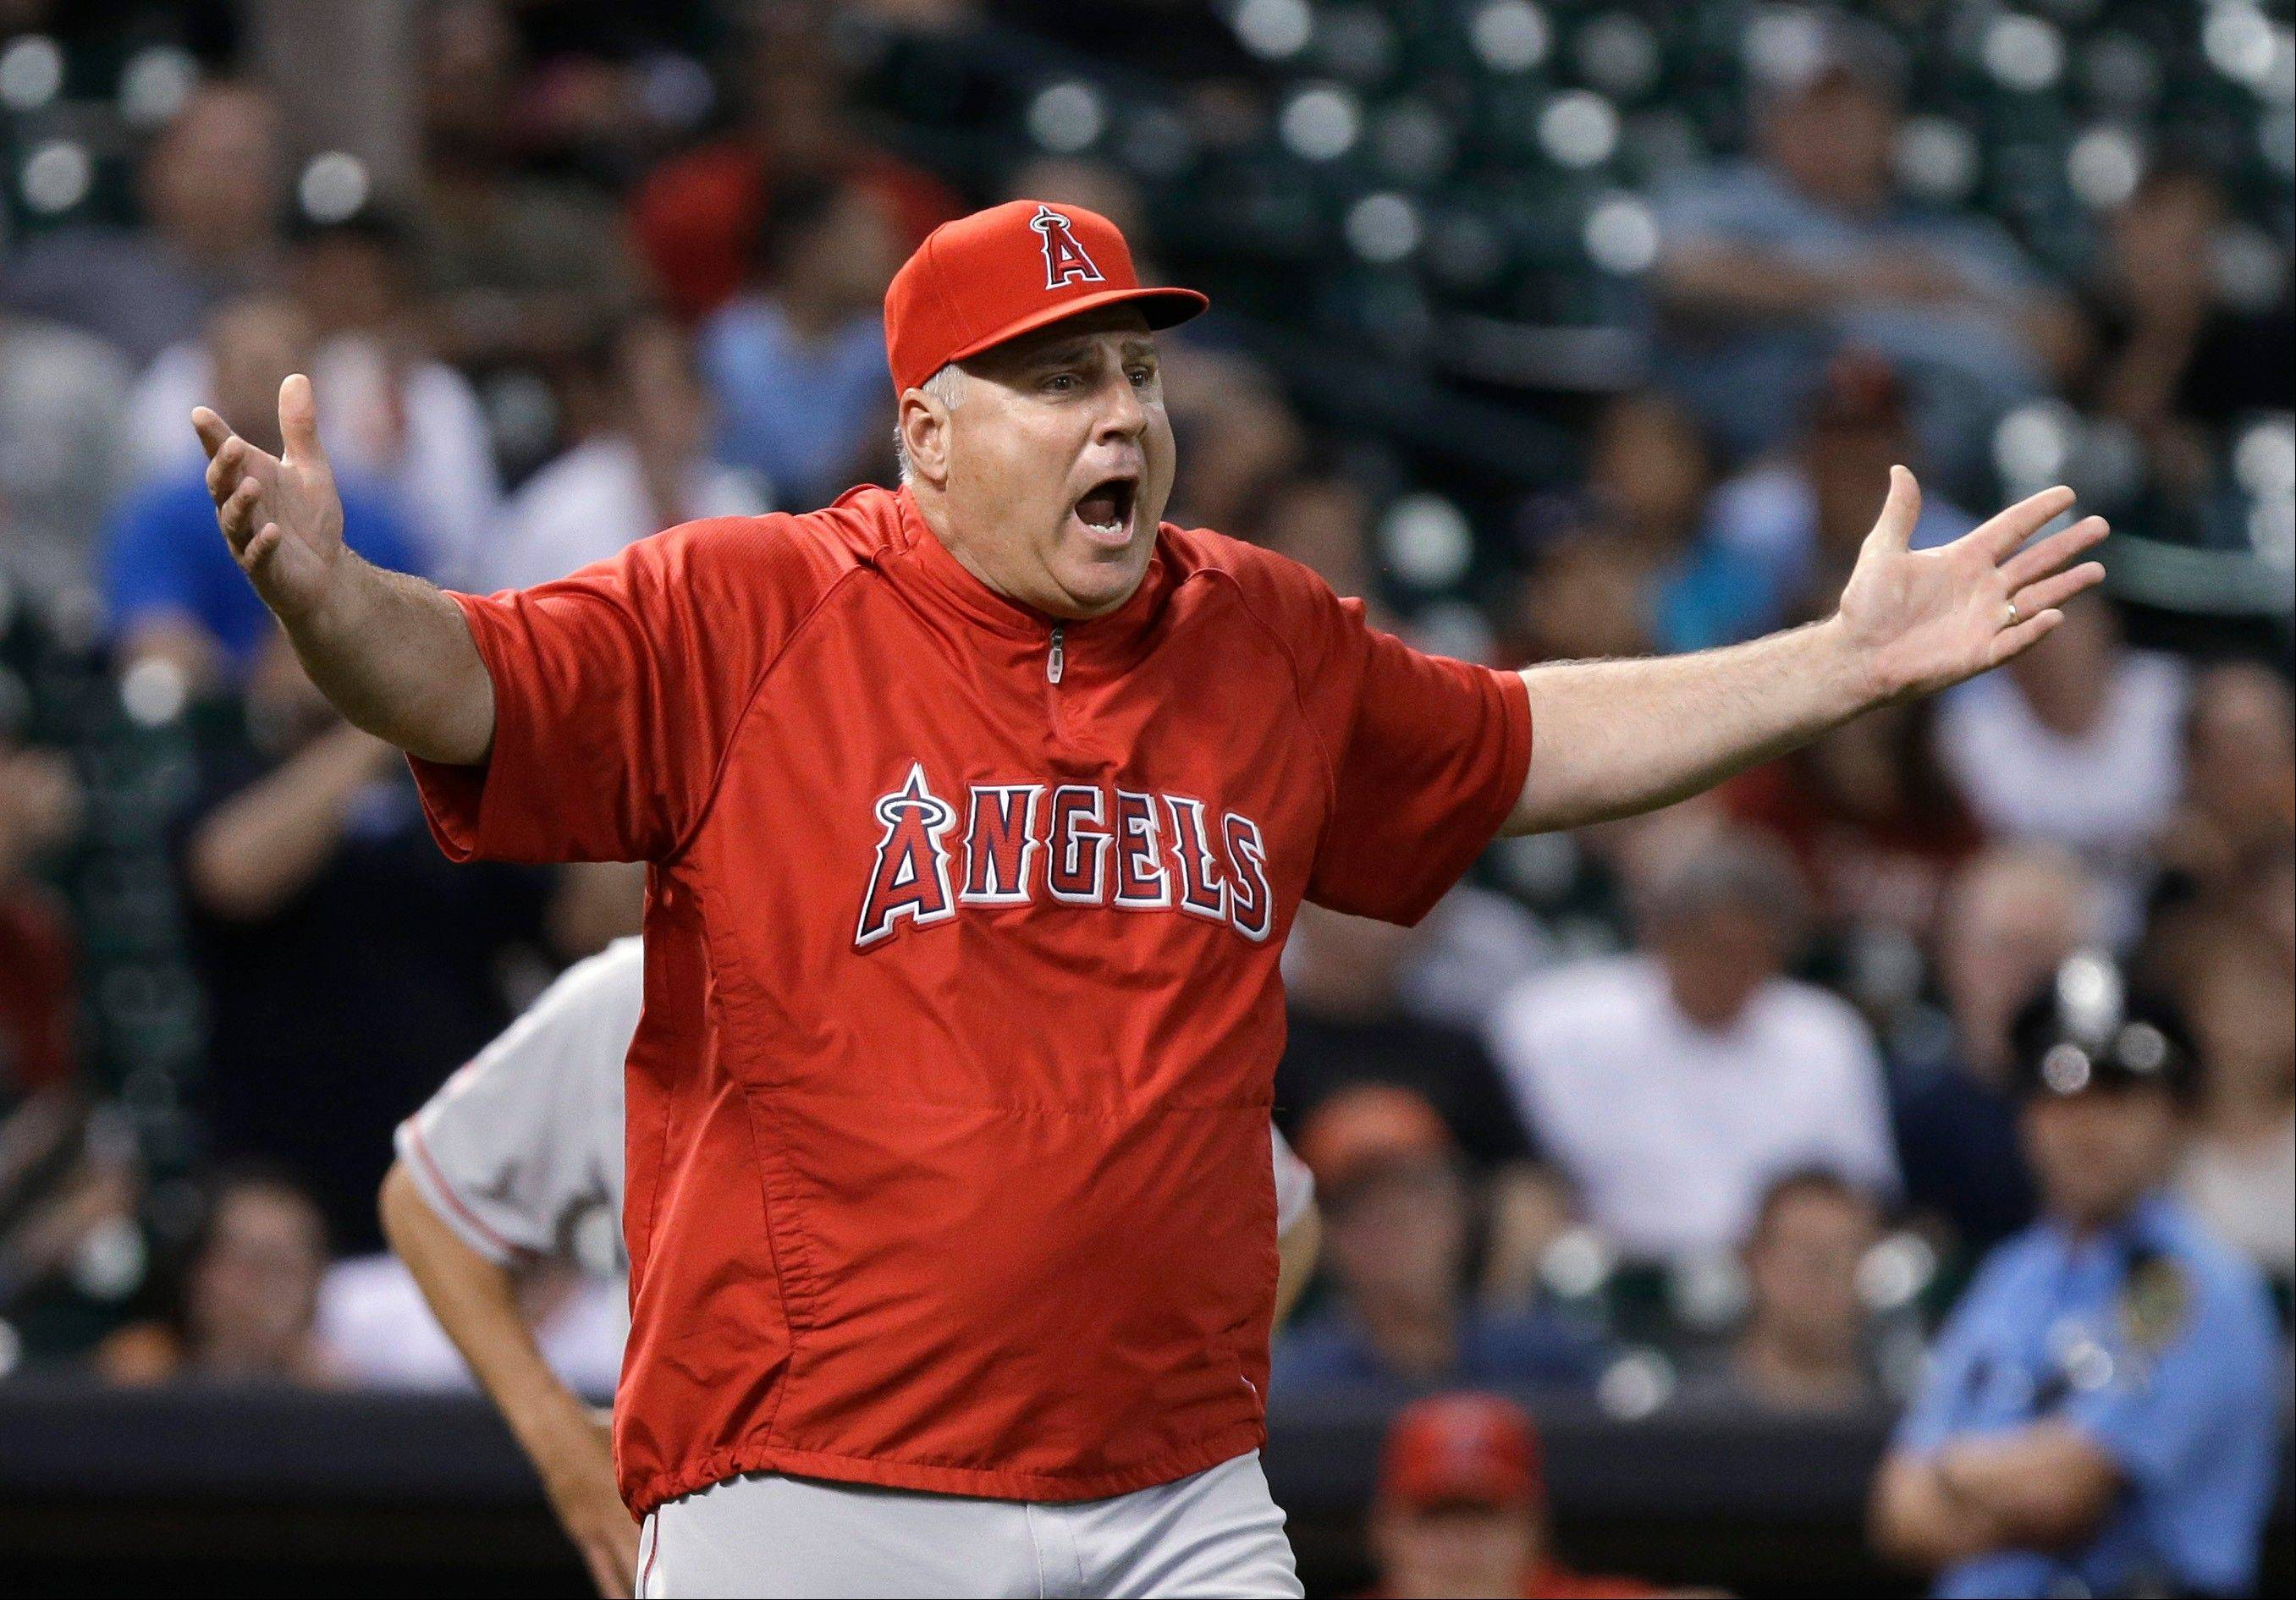 Los Angeles Angels manager Mike Scioscia questions the umpires on a Houston Astros pitching change in the seventh inning of a baseball game Thursday, May 9, 2013, in Houston.